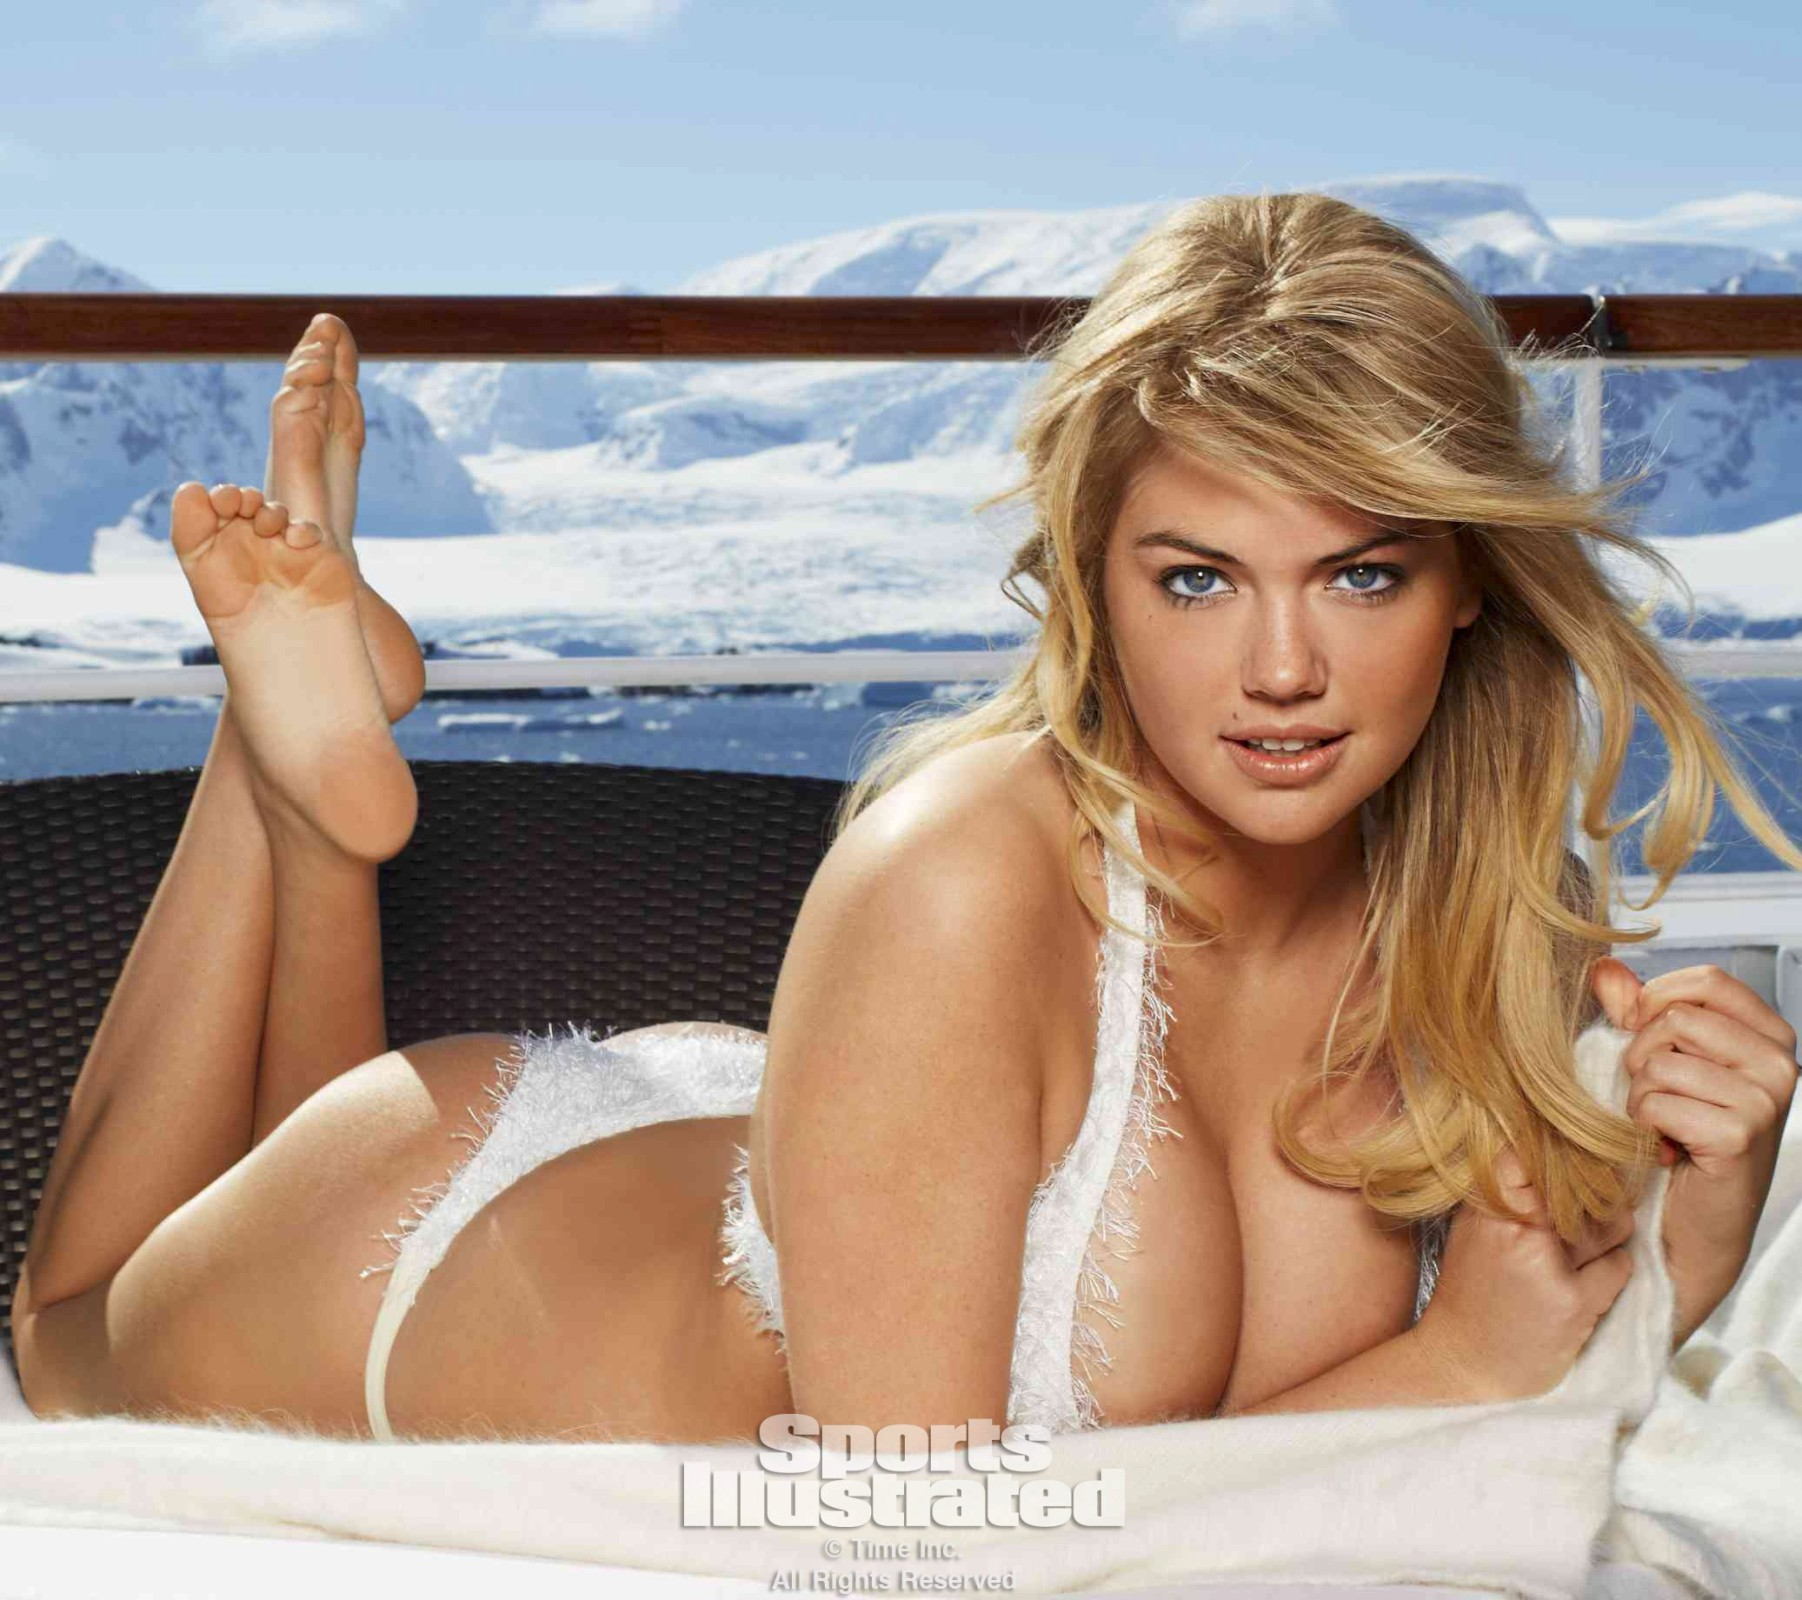 Publicado en 1802 × 1600 en Kate Upton – Sports Illustrated 2013.